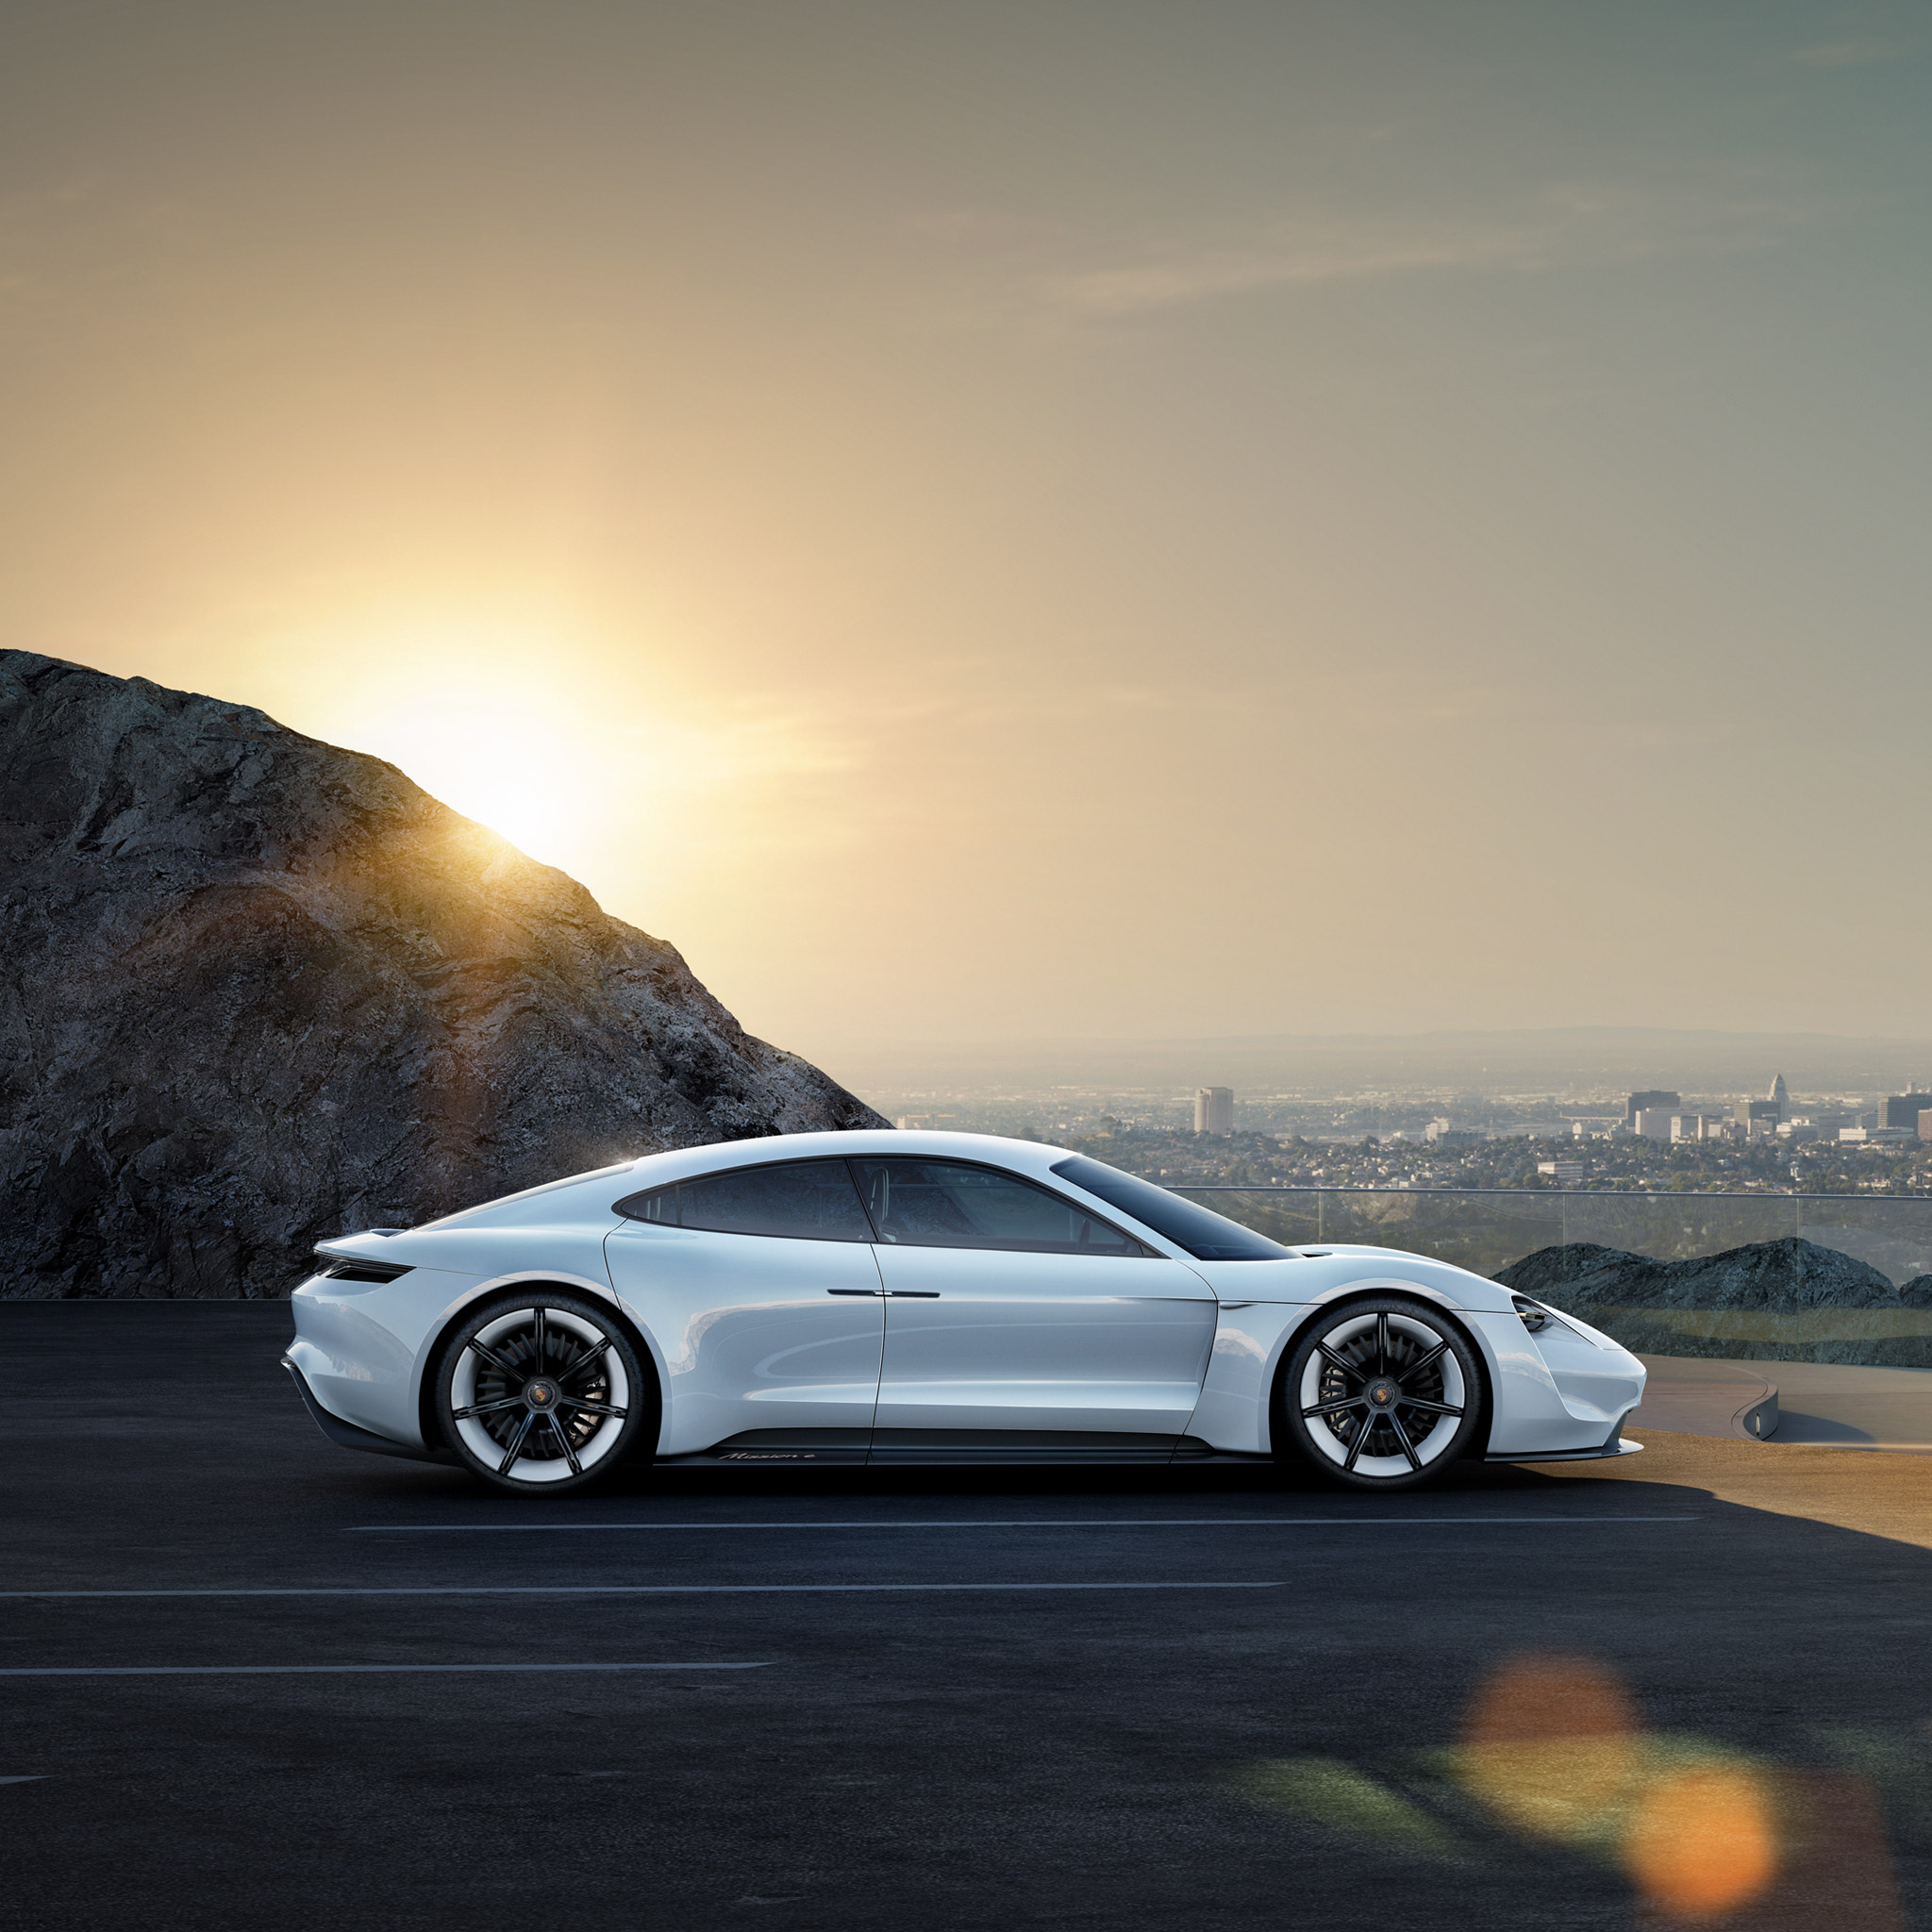 Tribute to tomorrow Porsche Concept Study Mission E Dr Ing 2048x2048